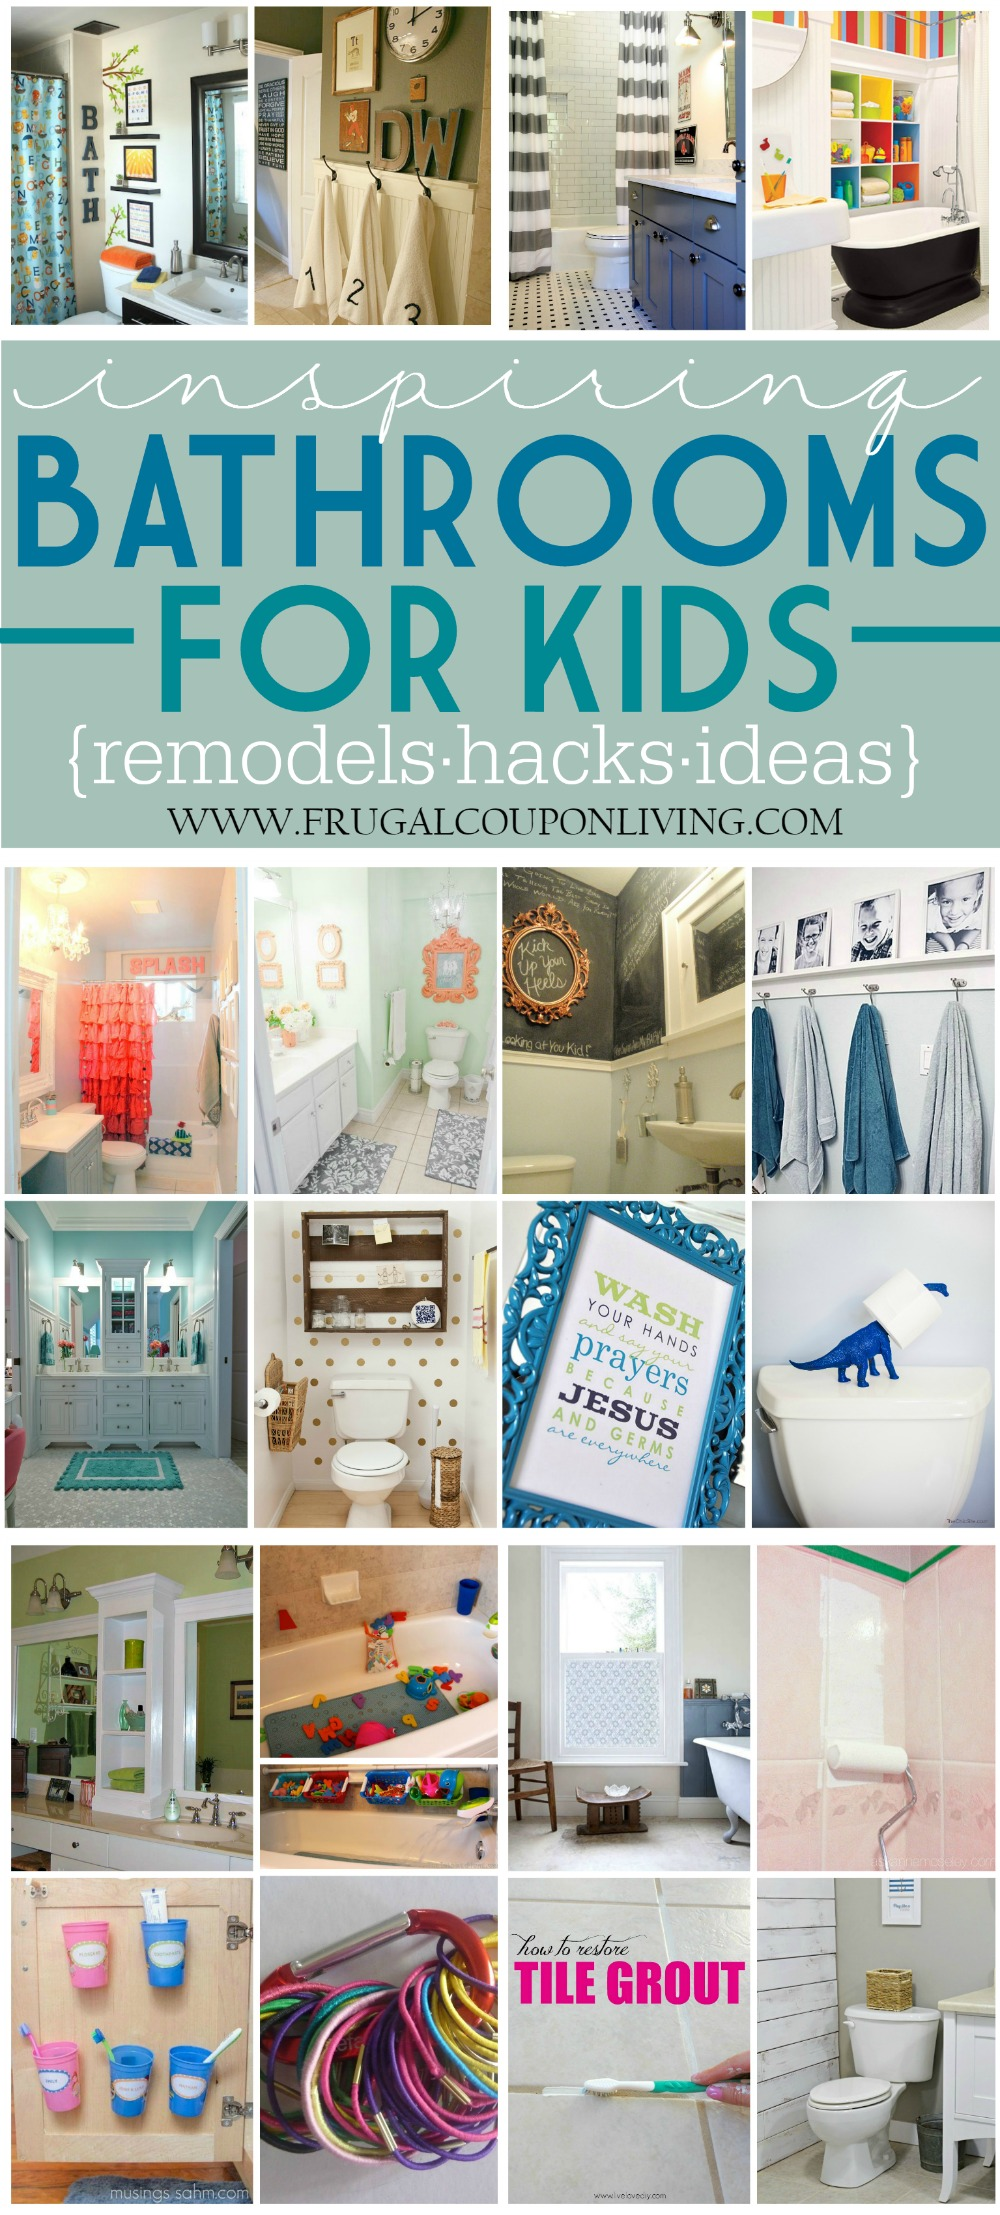 Inspiring Bathrooms for Kids on Frugal Coupon LIving